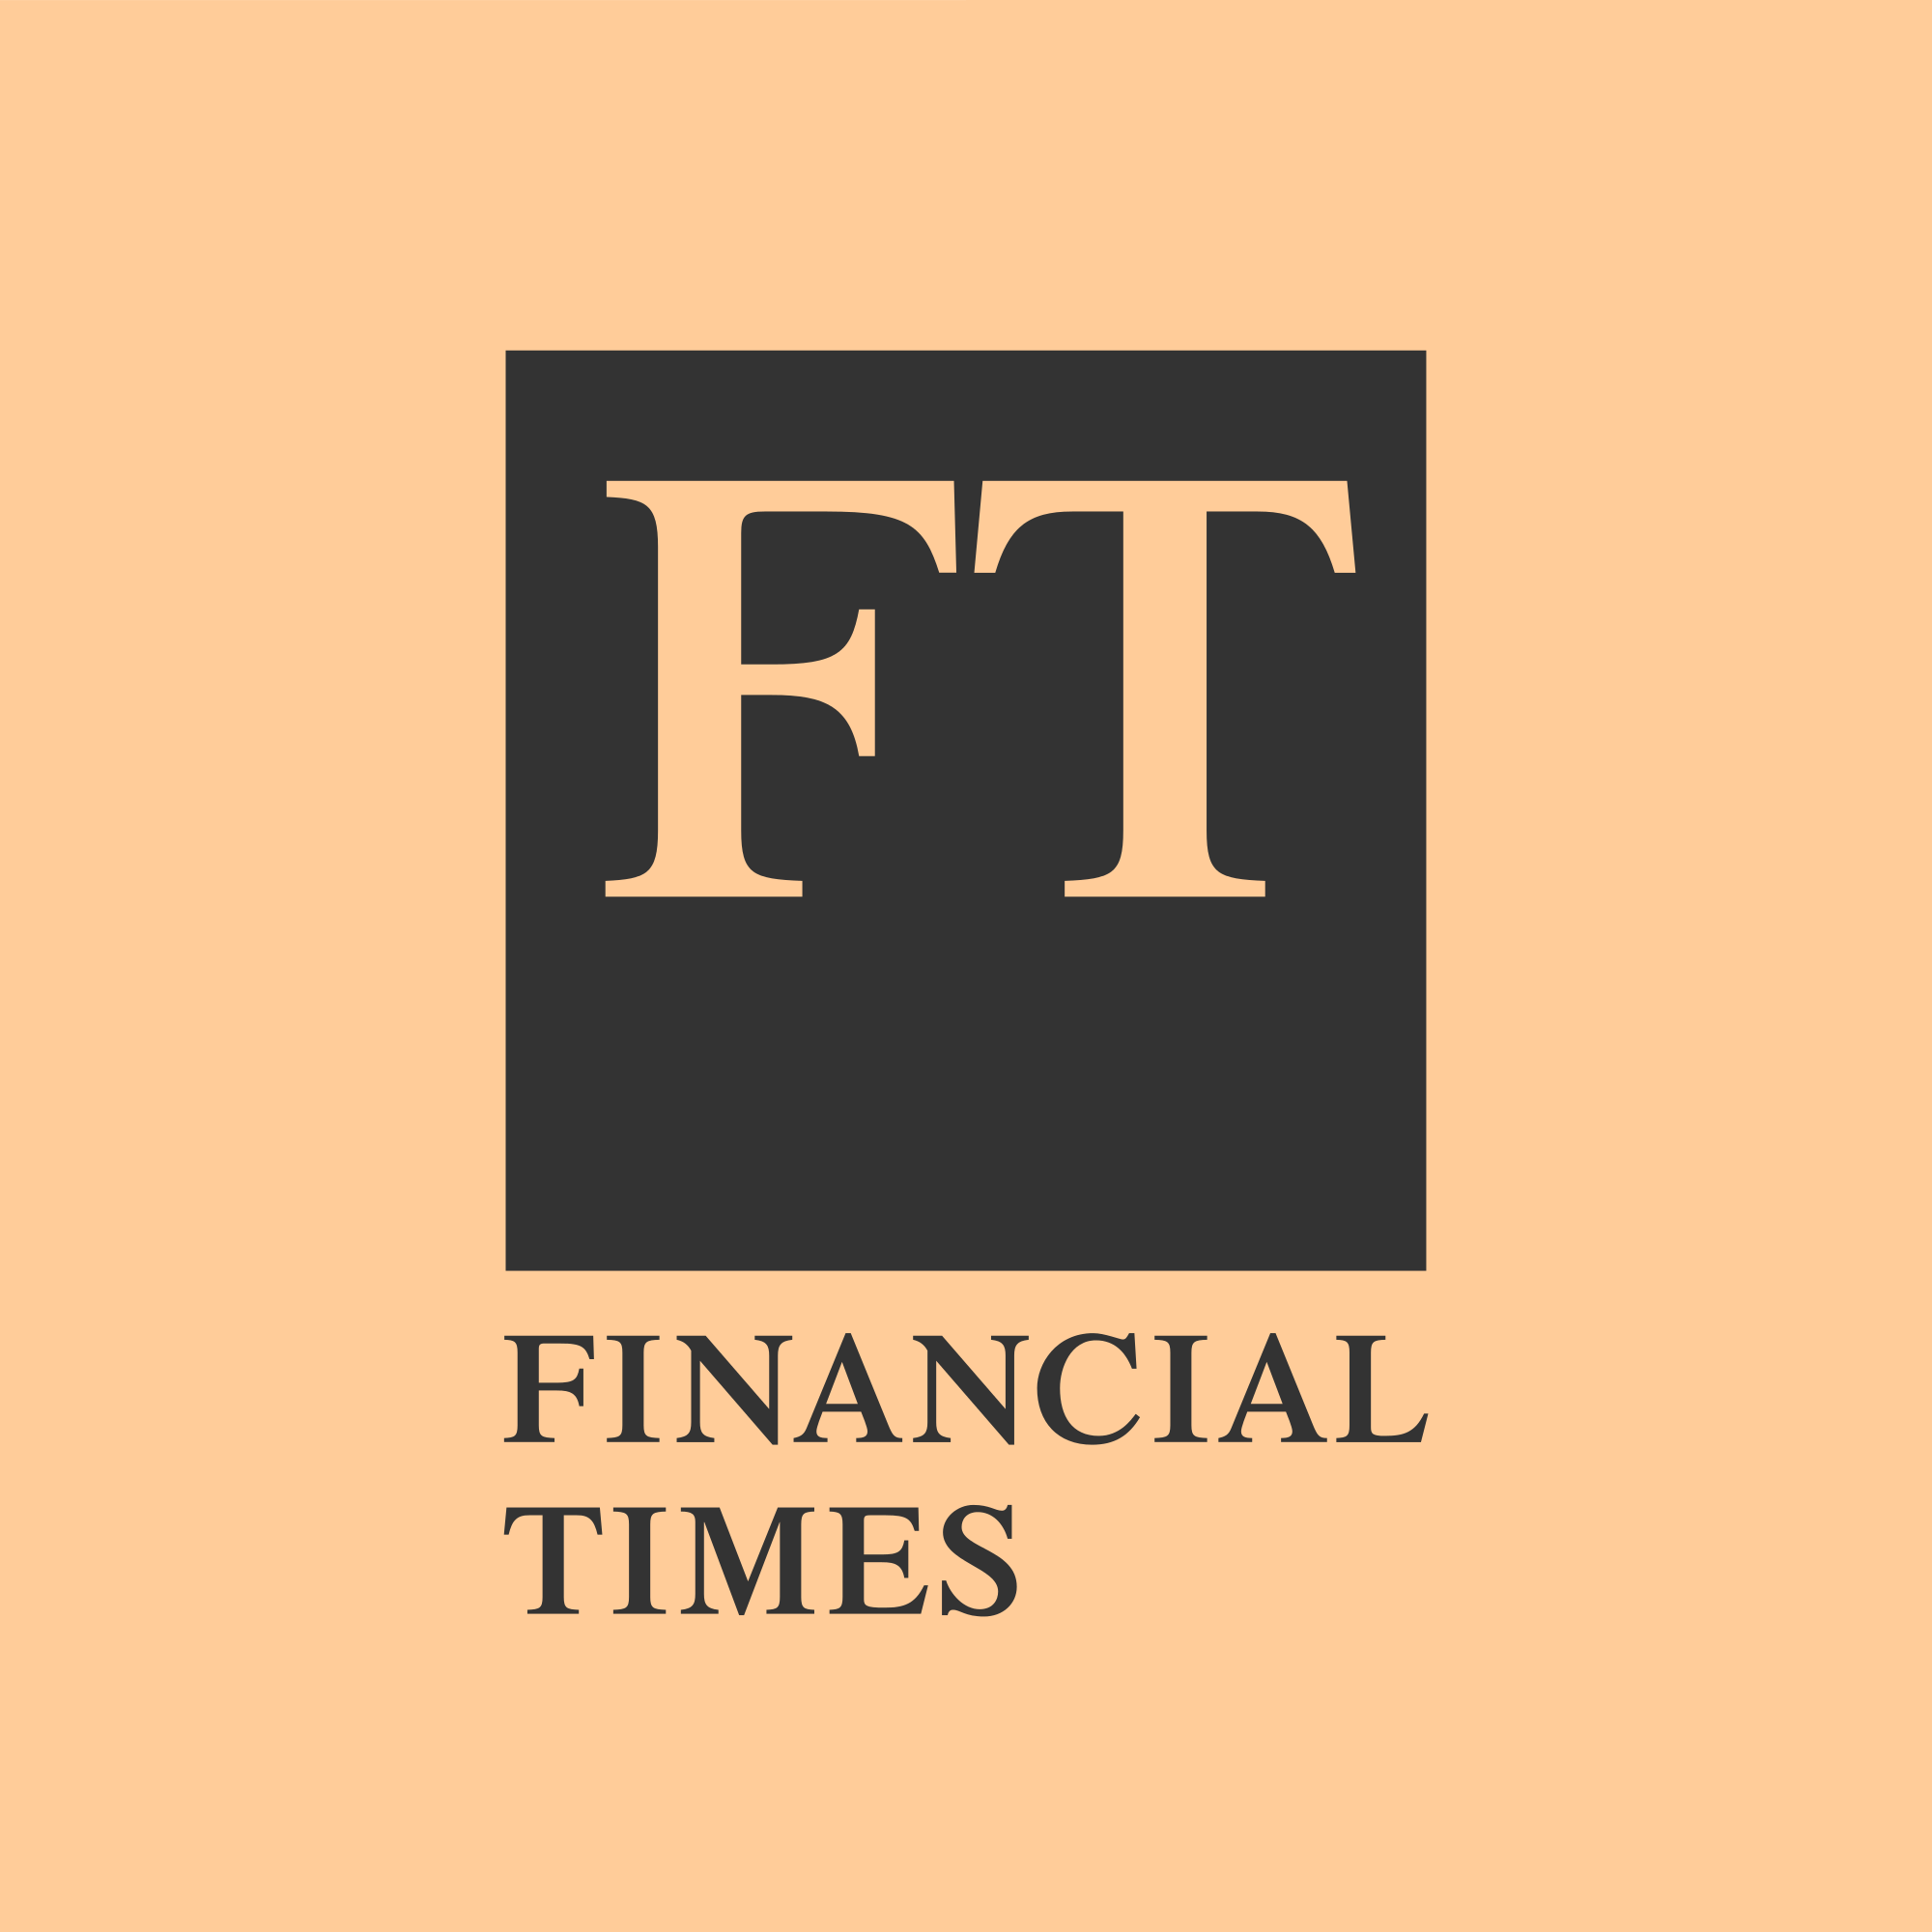 """Churchill Management Group has been named to the Financial Times 2016 """"300 Top Registered Investment Advisers*"""